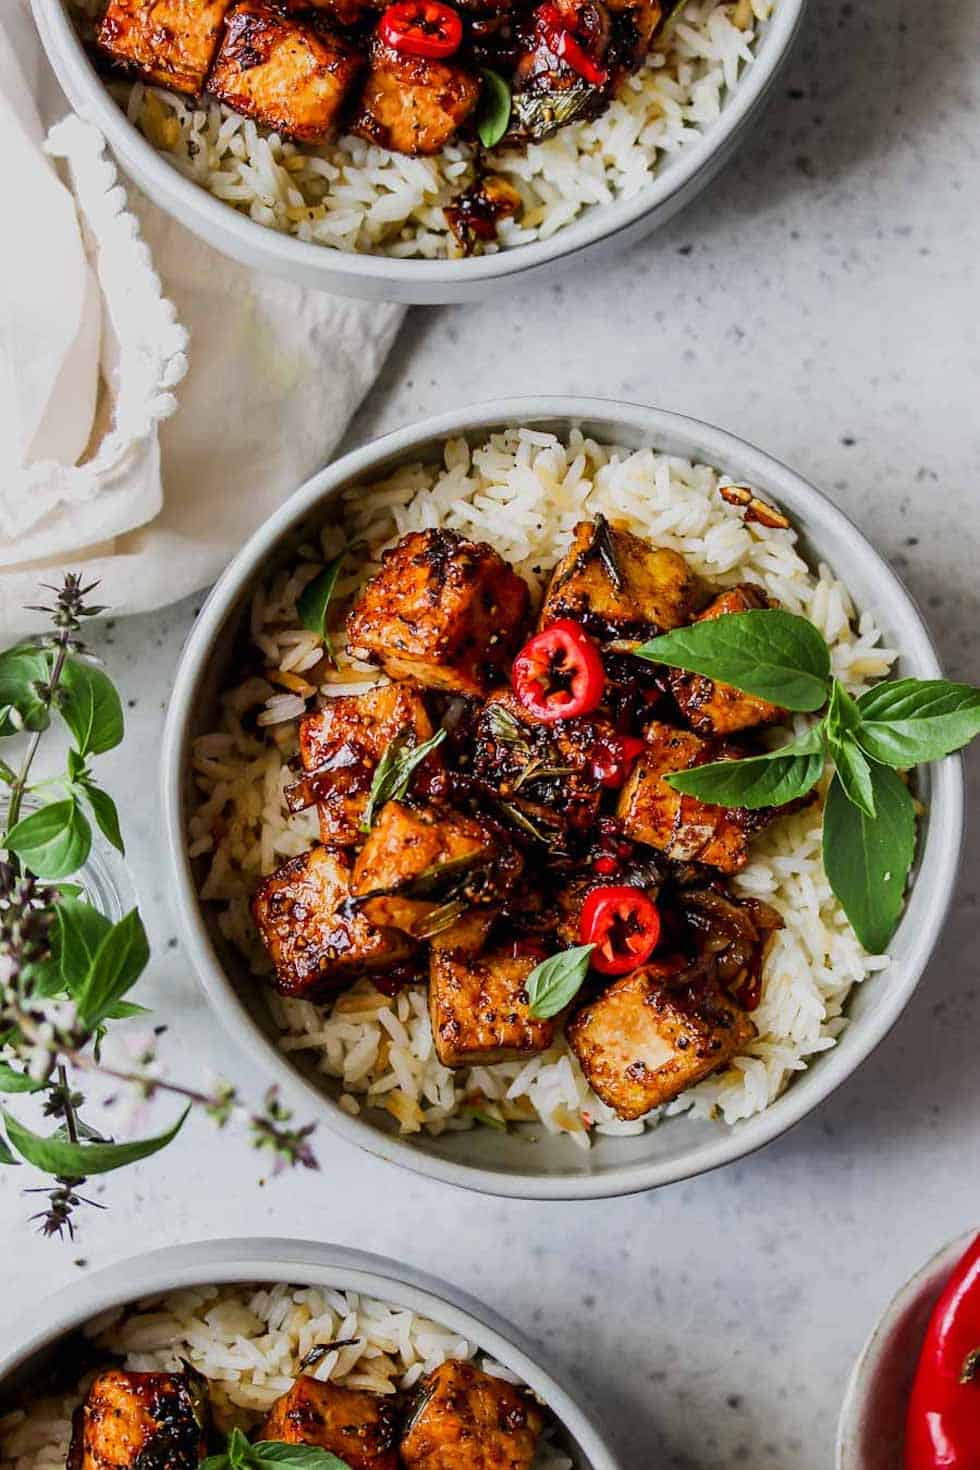 Vegetarian dinner recipes include this black pepper tofu served over rice with fresh basil in a grey bowl.